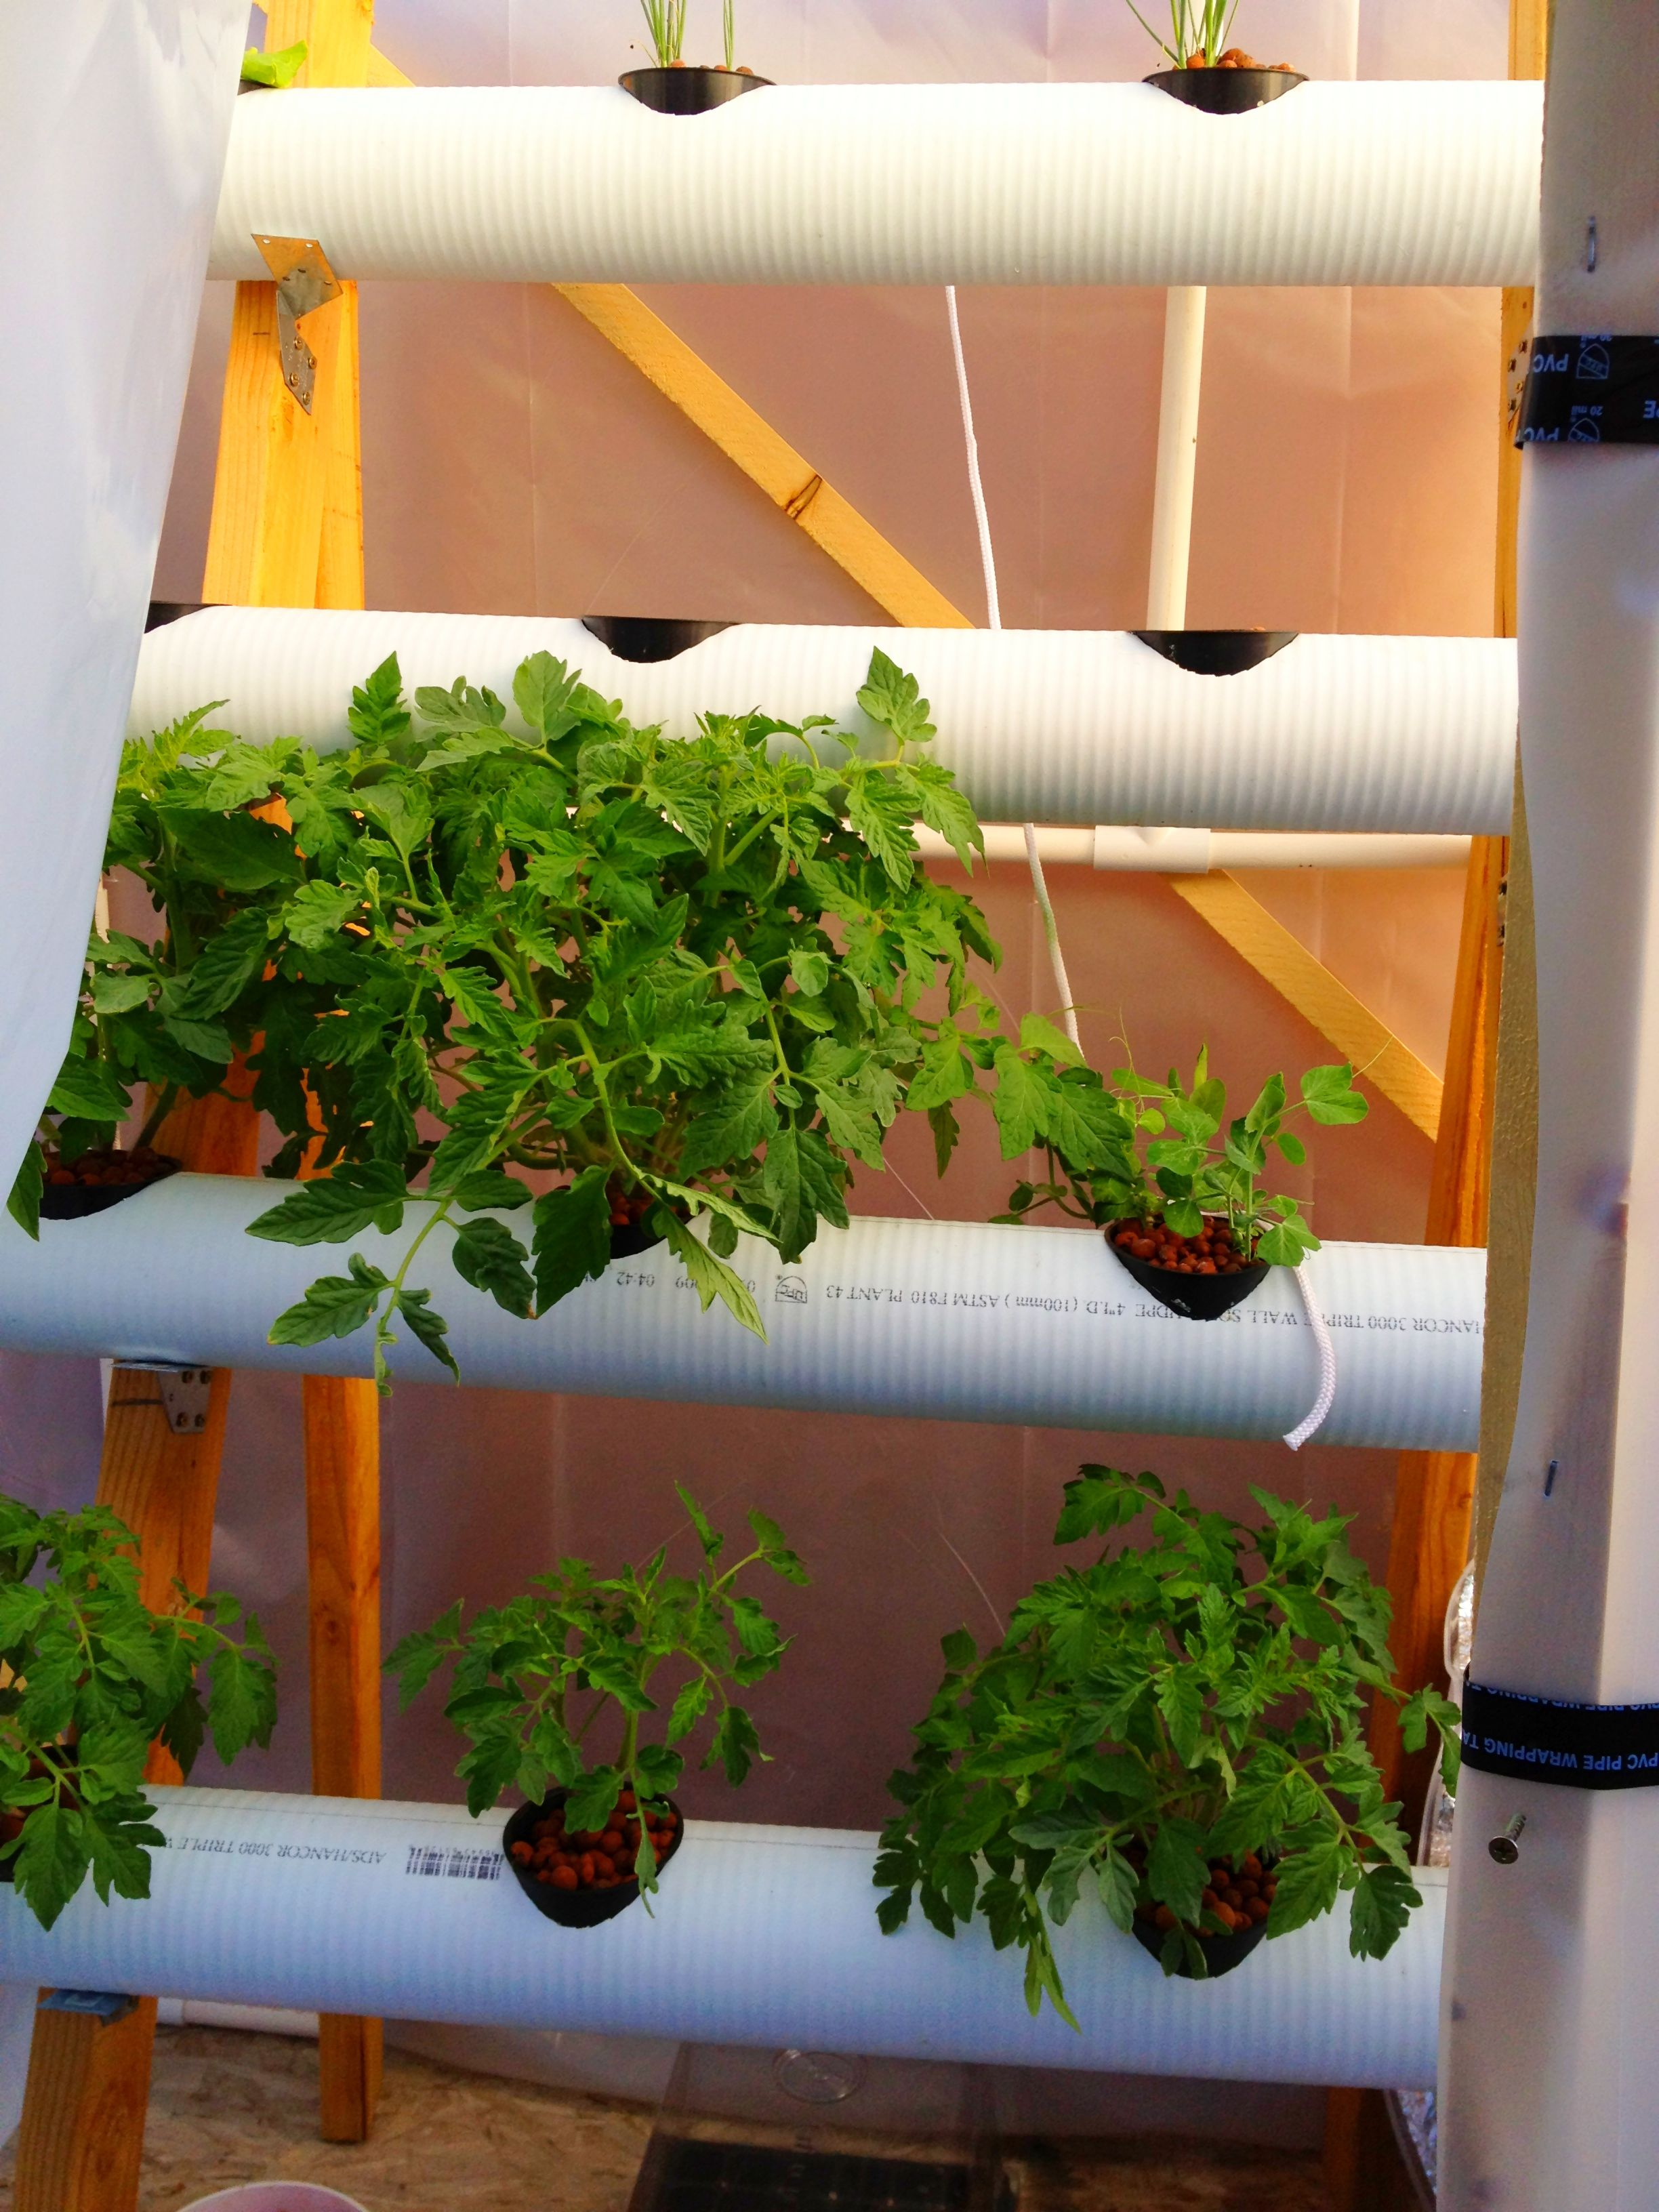 Hydroponics diy image by Rubicisca 🌿 on Agriculture ...